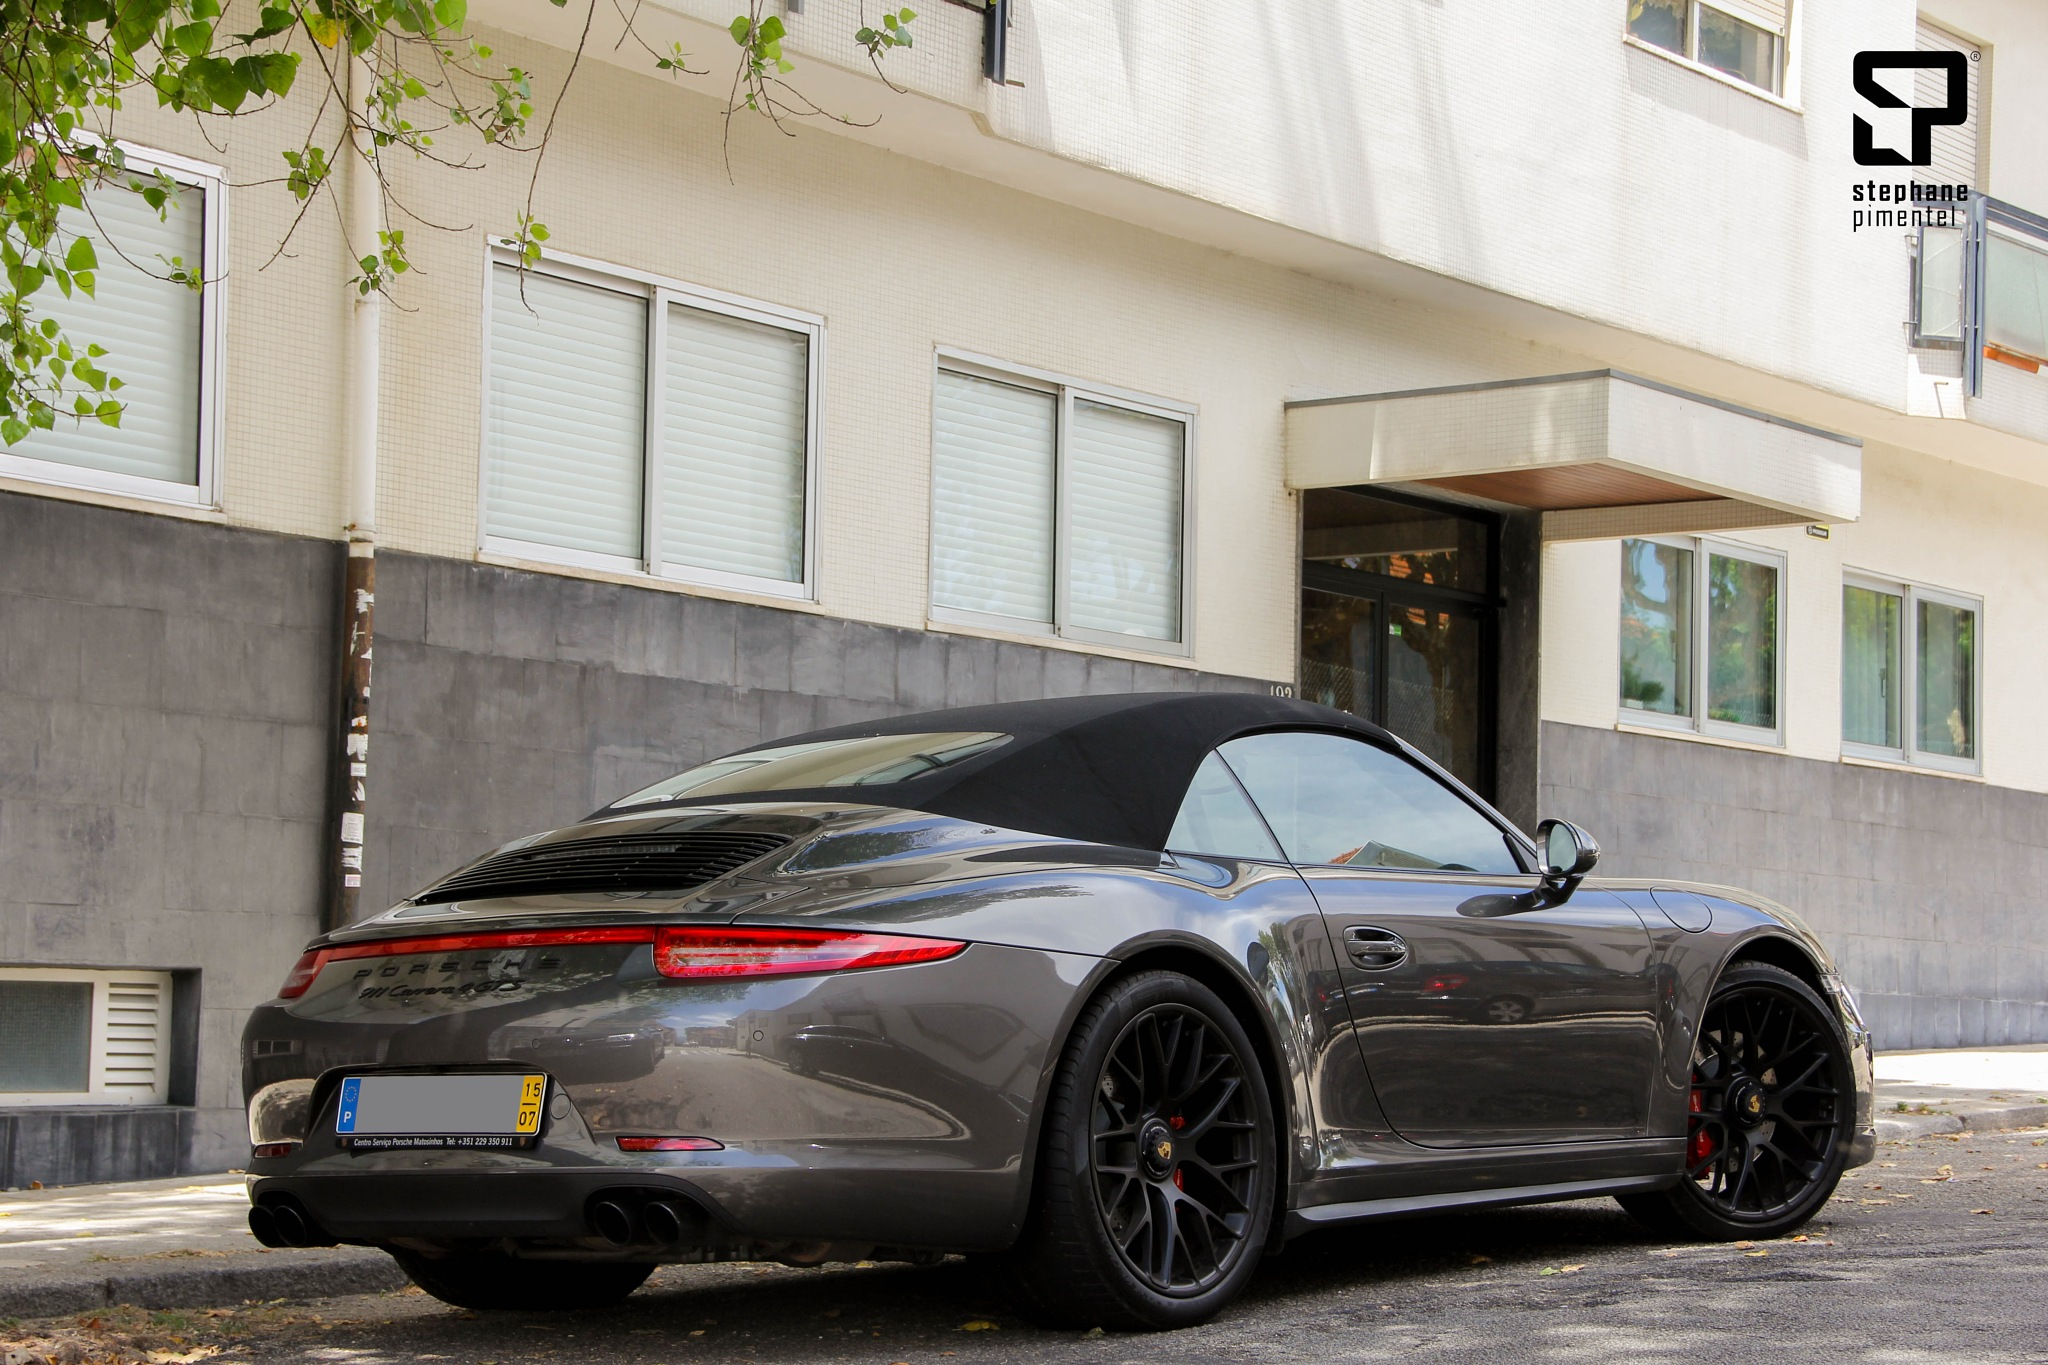 Porsche 911 Carrera 4 GTS by Stephane Pimentel Photography